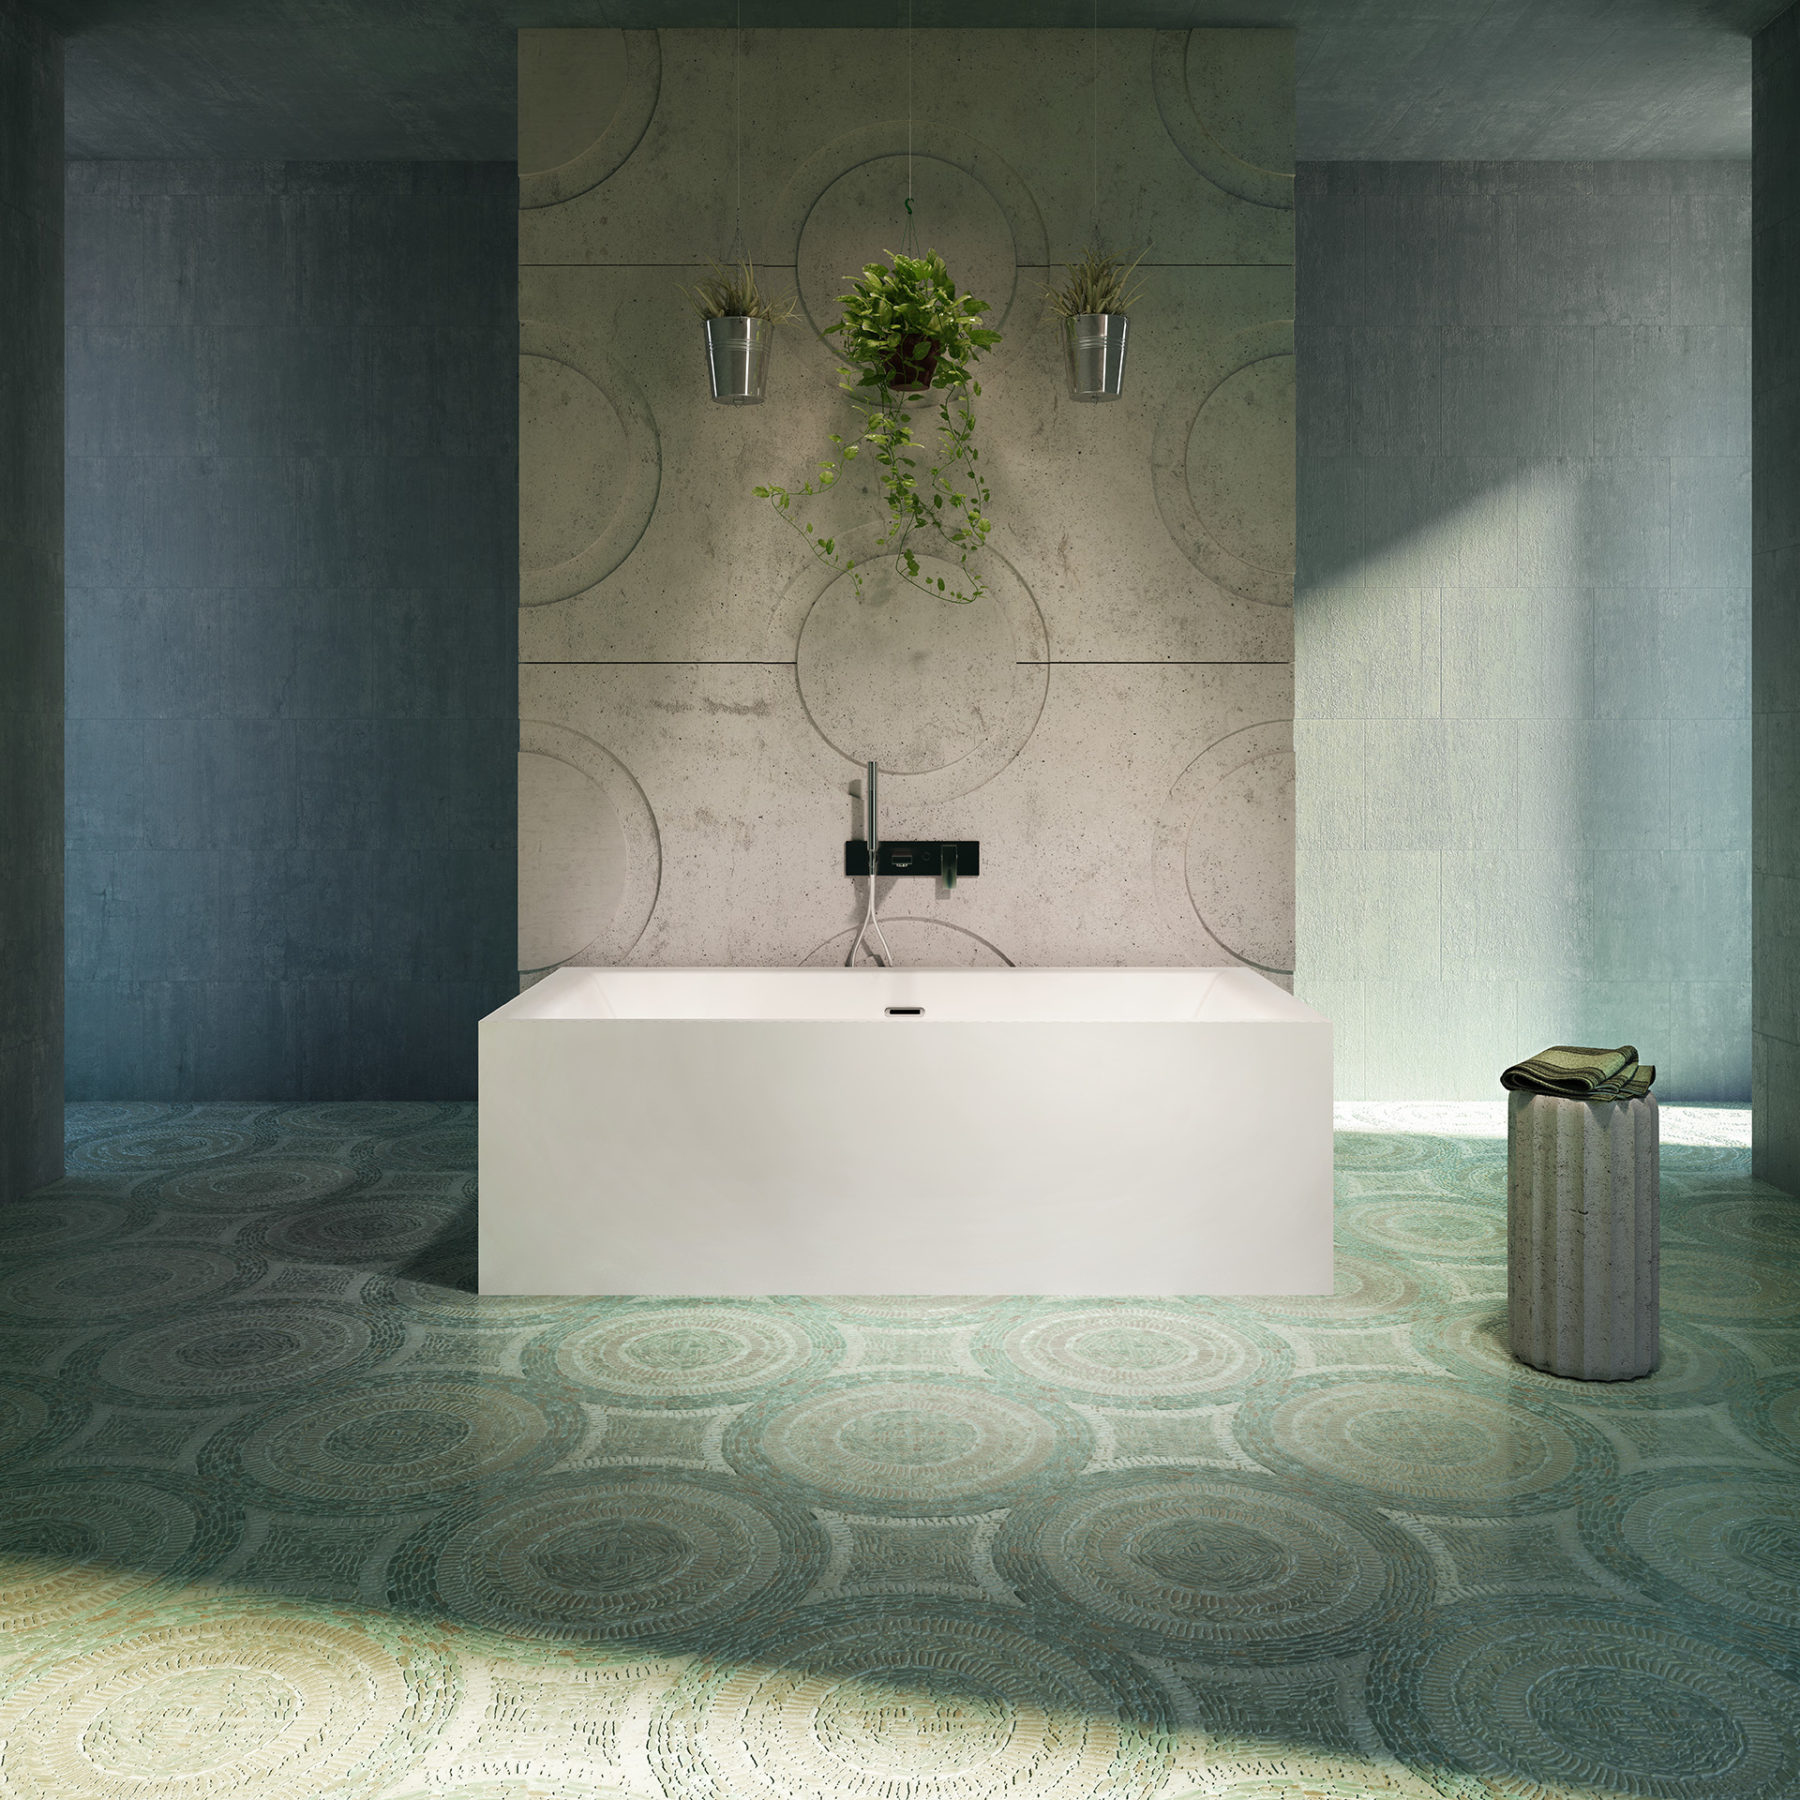 cgi-green-bathtub-bathroom-flooring-elegant